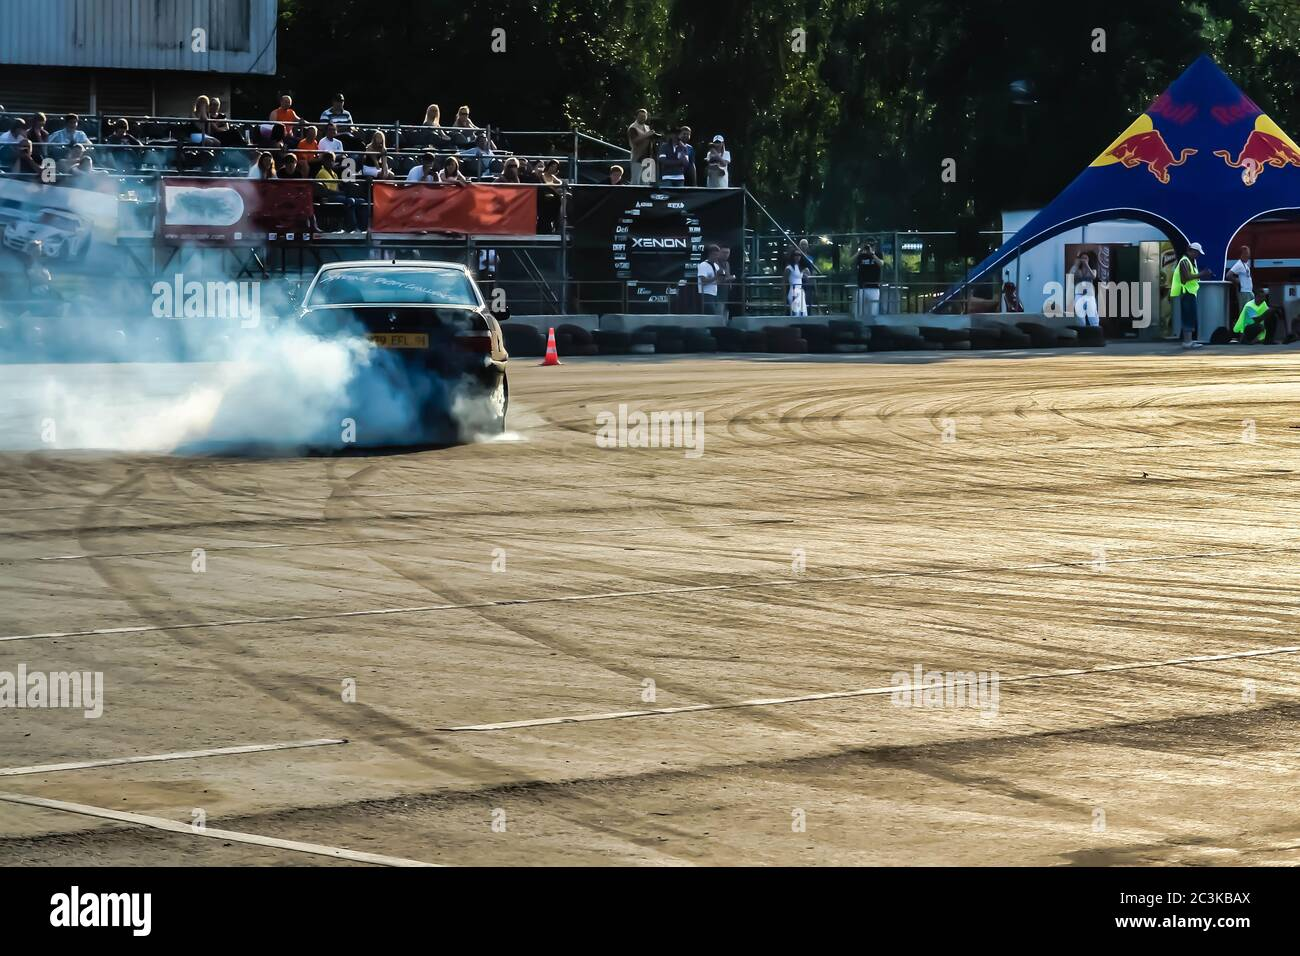 Moscow Russia May 25 2019 Black Drift Bmw Tuned Car Drifting In The Fenced Area Burnout Back Side Stock Photo Alamy